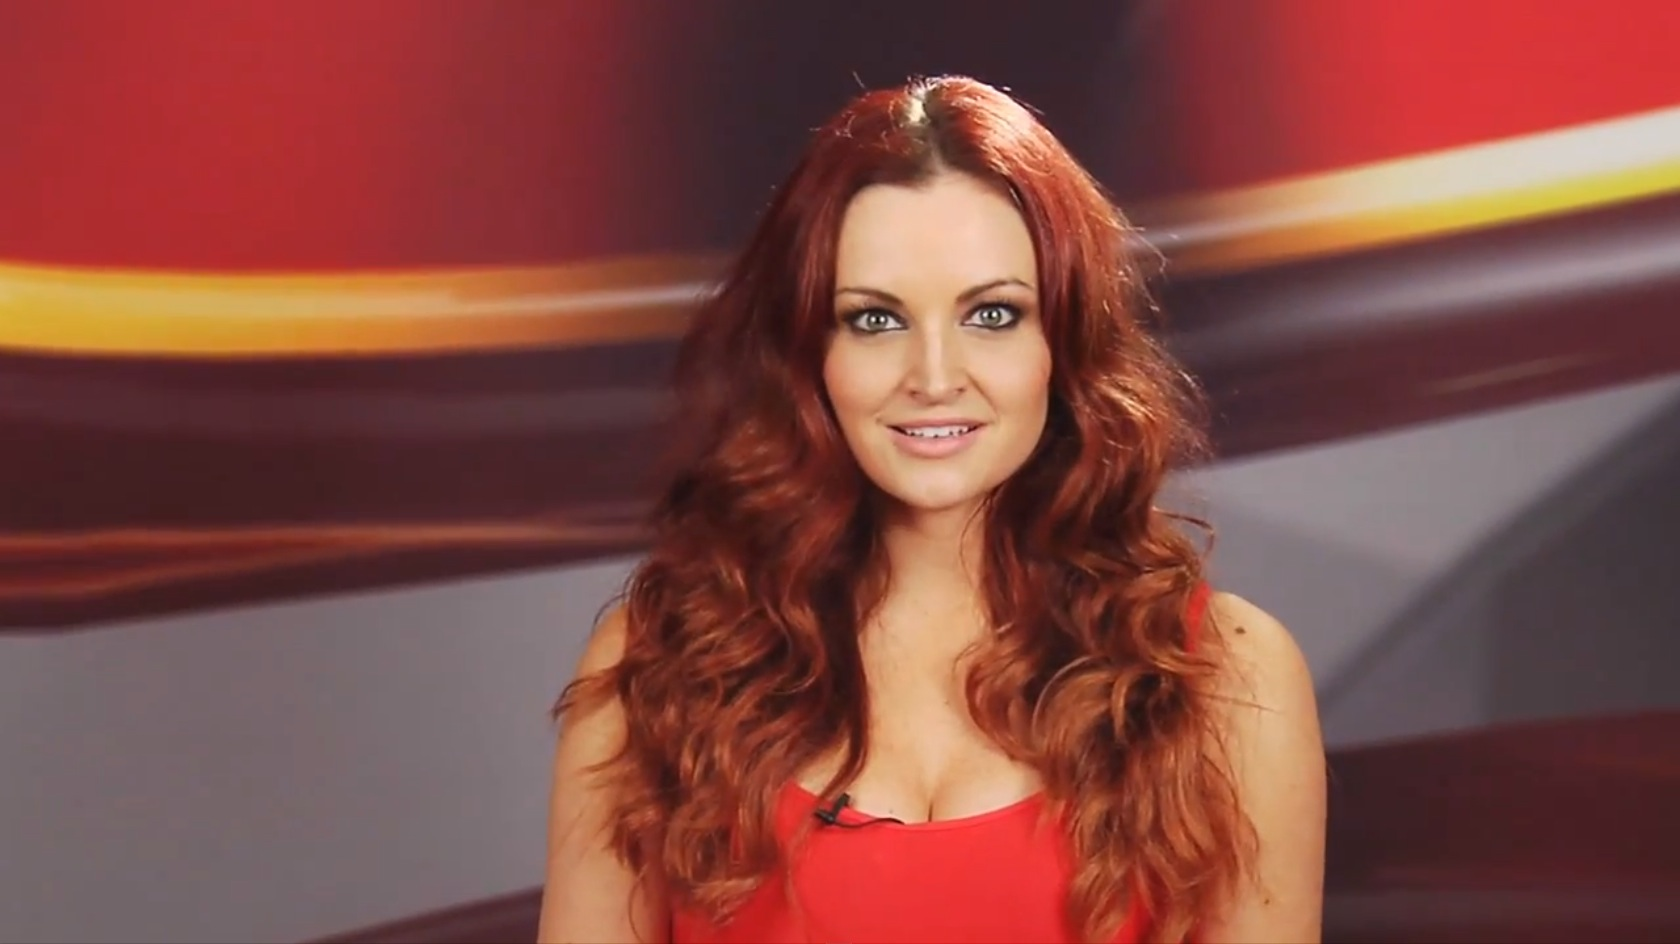 maria kanellis fan sitemaria kanellis instagram, maria kanellis tna, maria kanellis aj styles, maria kanellis 2016, maria kanellis and donald trump, maria kanellis wallpaper, maria kanellis wiki, maria kanellis height, maria kanellis hot photo, maria kanellis twitter, maria kanellis vs, maria kanellis 2005, maria kanellis randy orton, maria kanellis cagematch, maria kanellis official website, maria kanellis, maria kanellis fan site, maria kanellis wwe, maria kanellis 2015, maria kanellis facebook